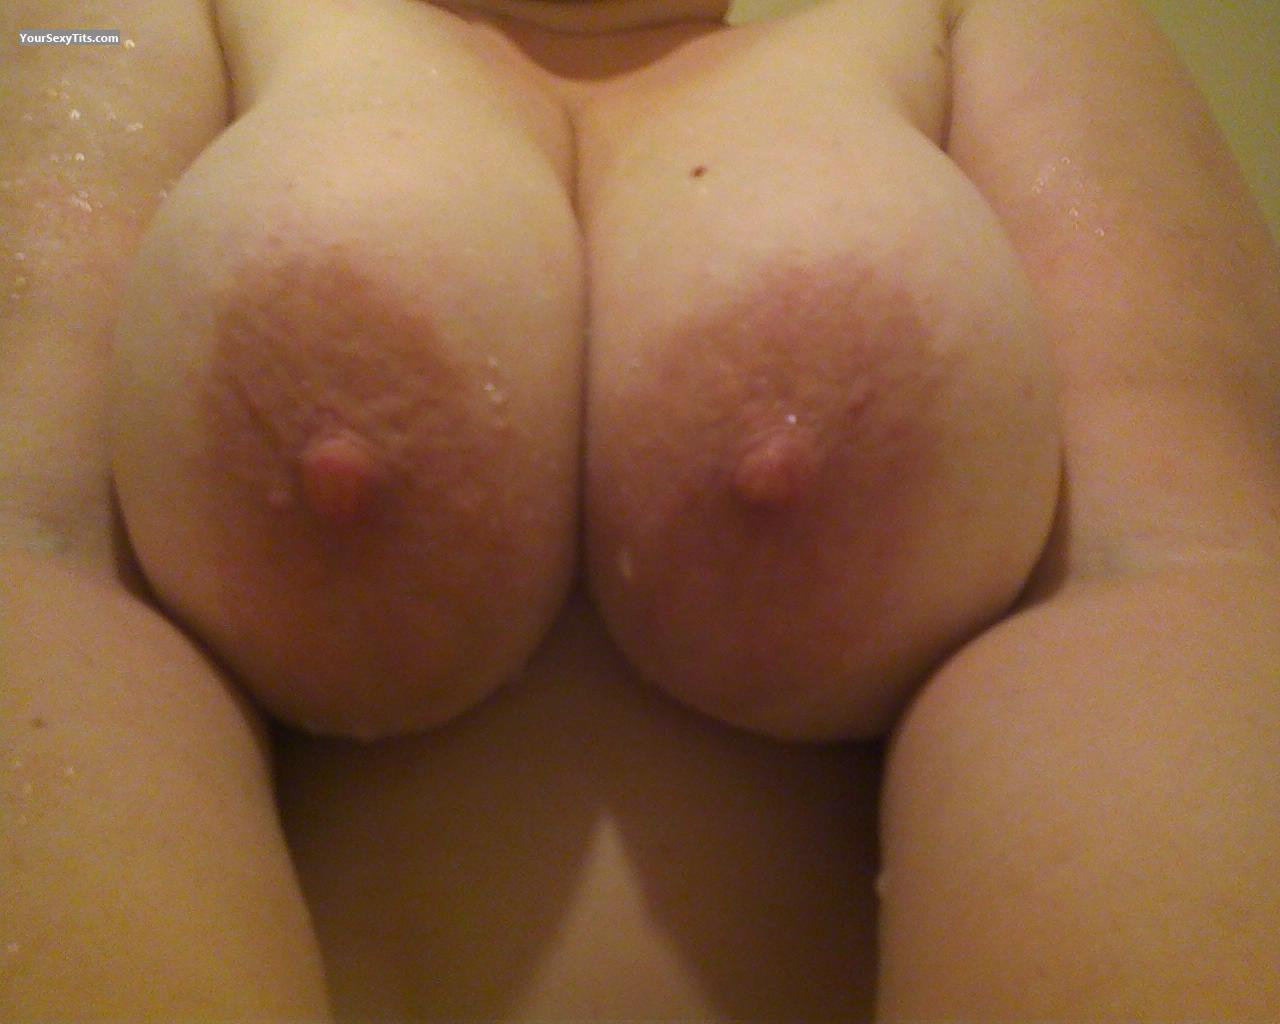 Tit Flash: My Big Tits (Selfie) - Jaimee from United States